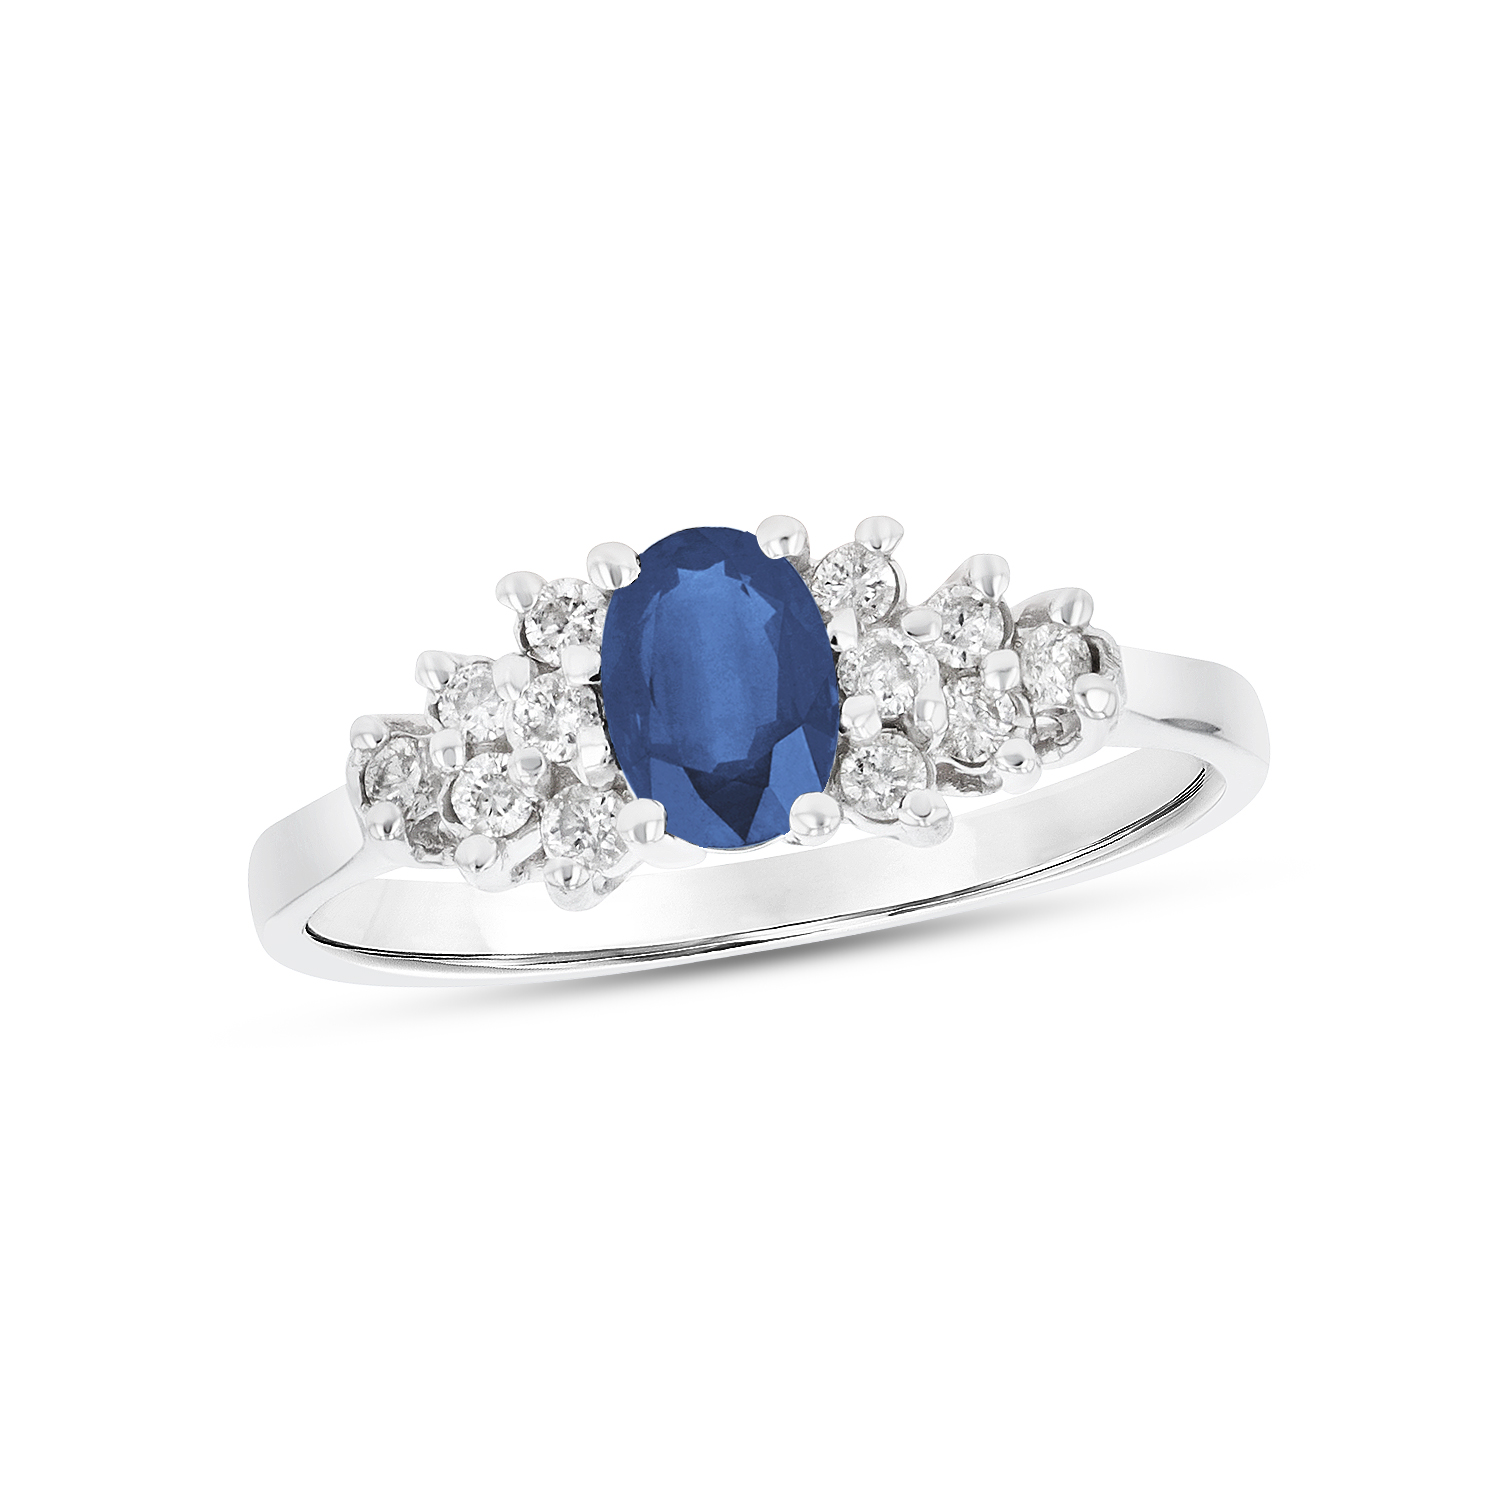 View 0.68ctw Diamond and Sapphire Ring in 14k White Gold